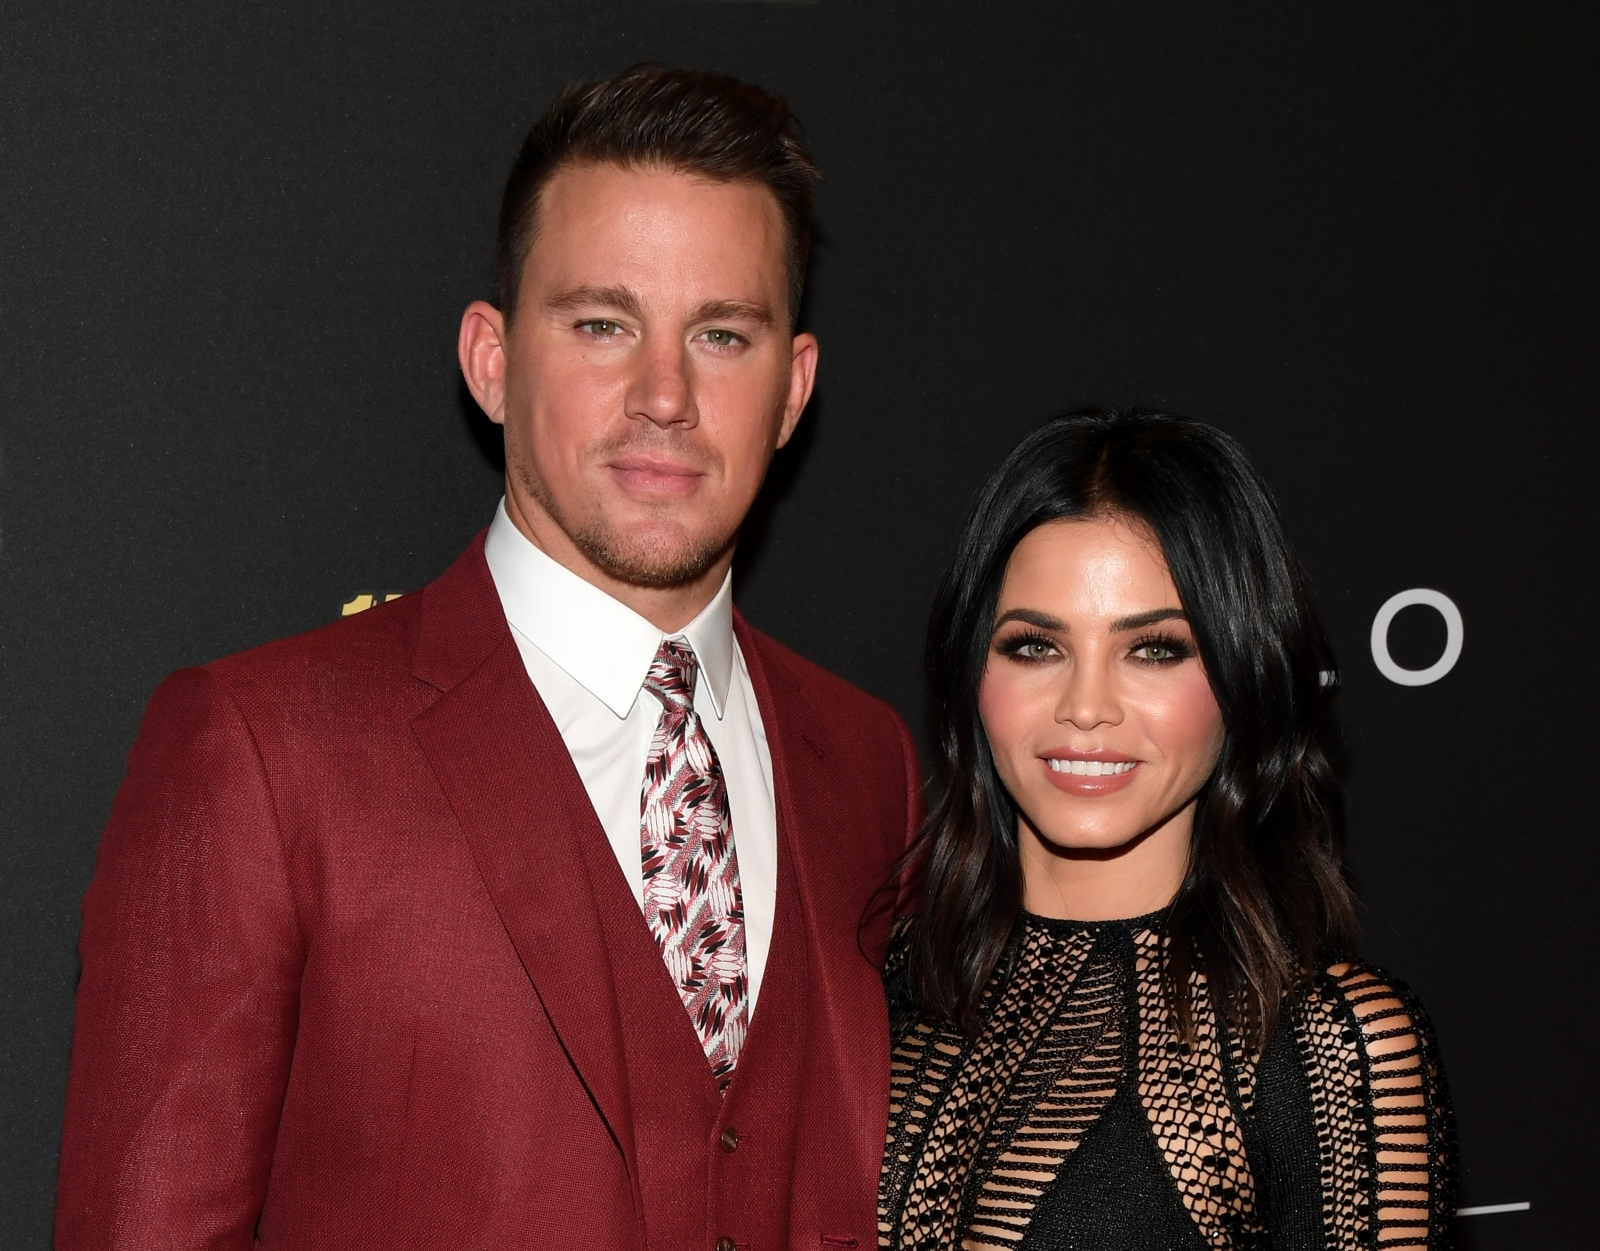 Halle Berry Got Jenna Dewan Tatum to Chug Whiskey on TV!